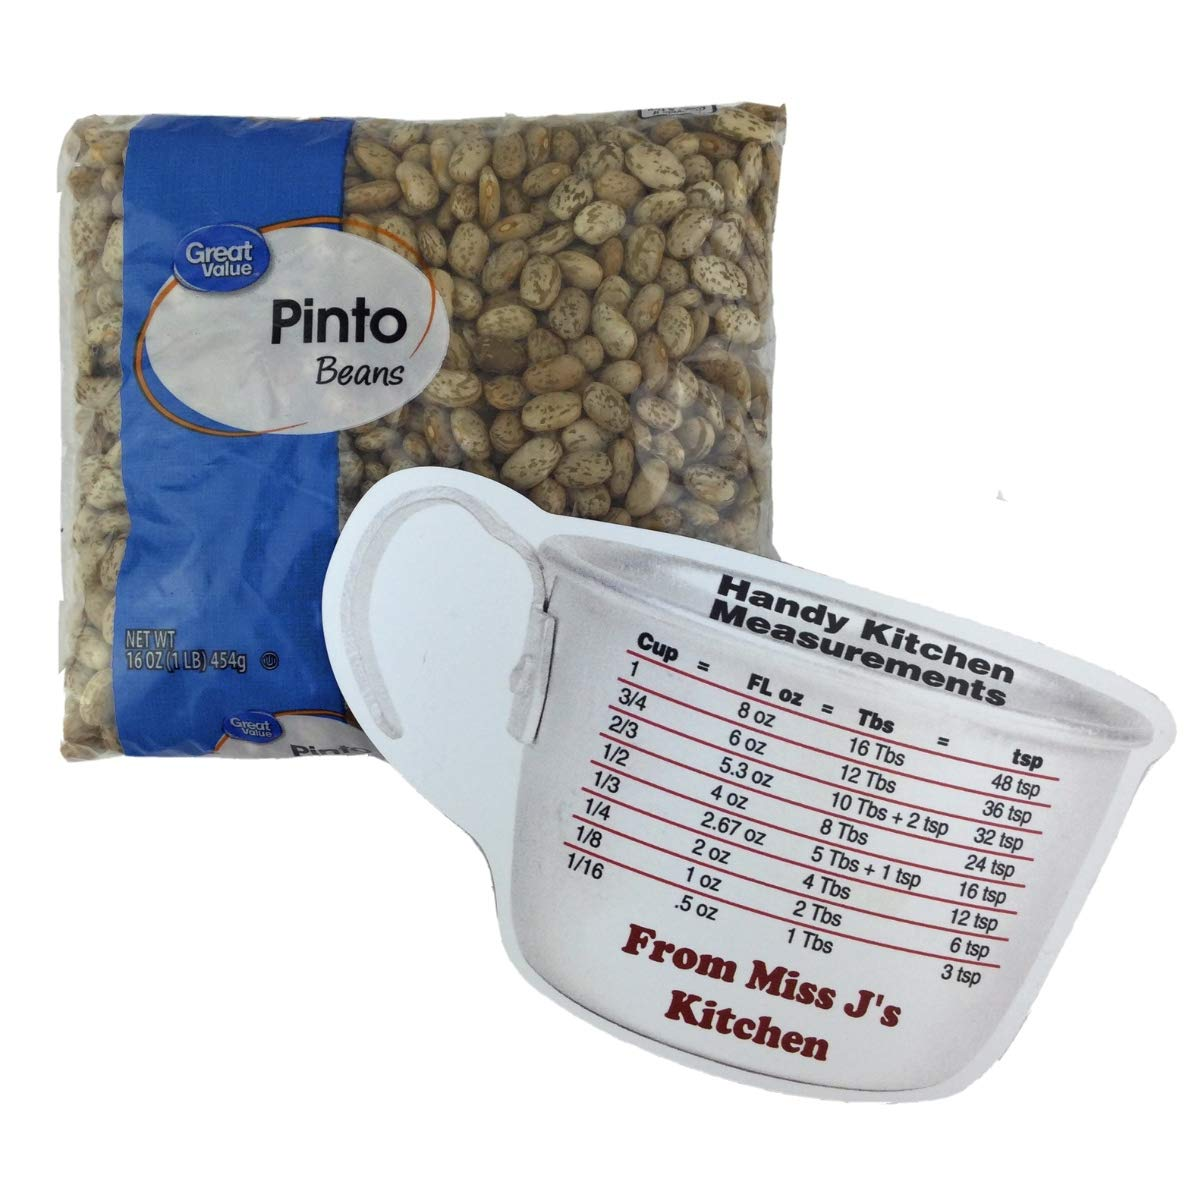 Great Value Dry Pinto Beans 1 New mail order lb with Max 63% OFF Miss Bag J's Ki Handy